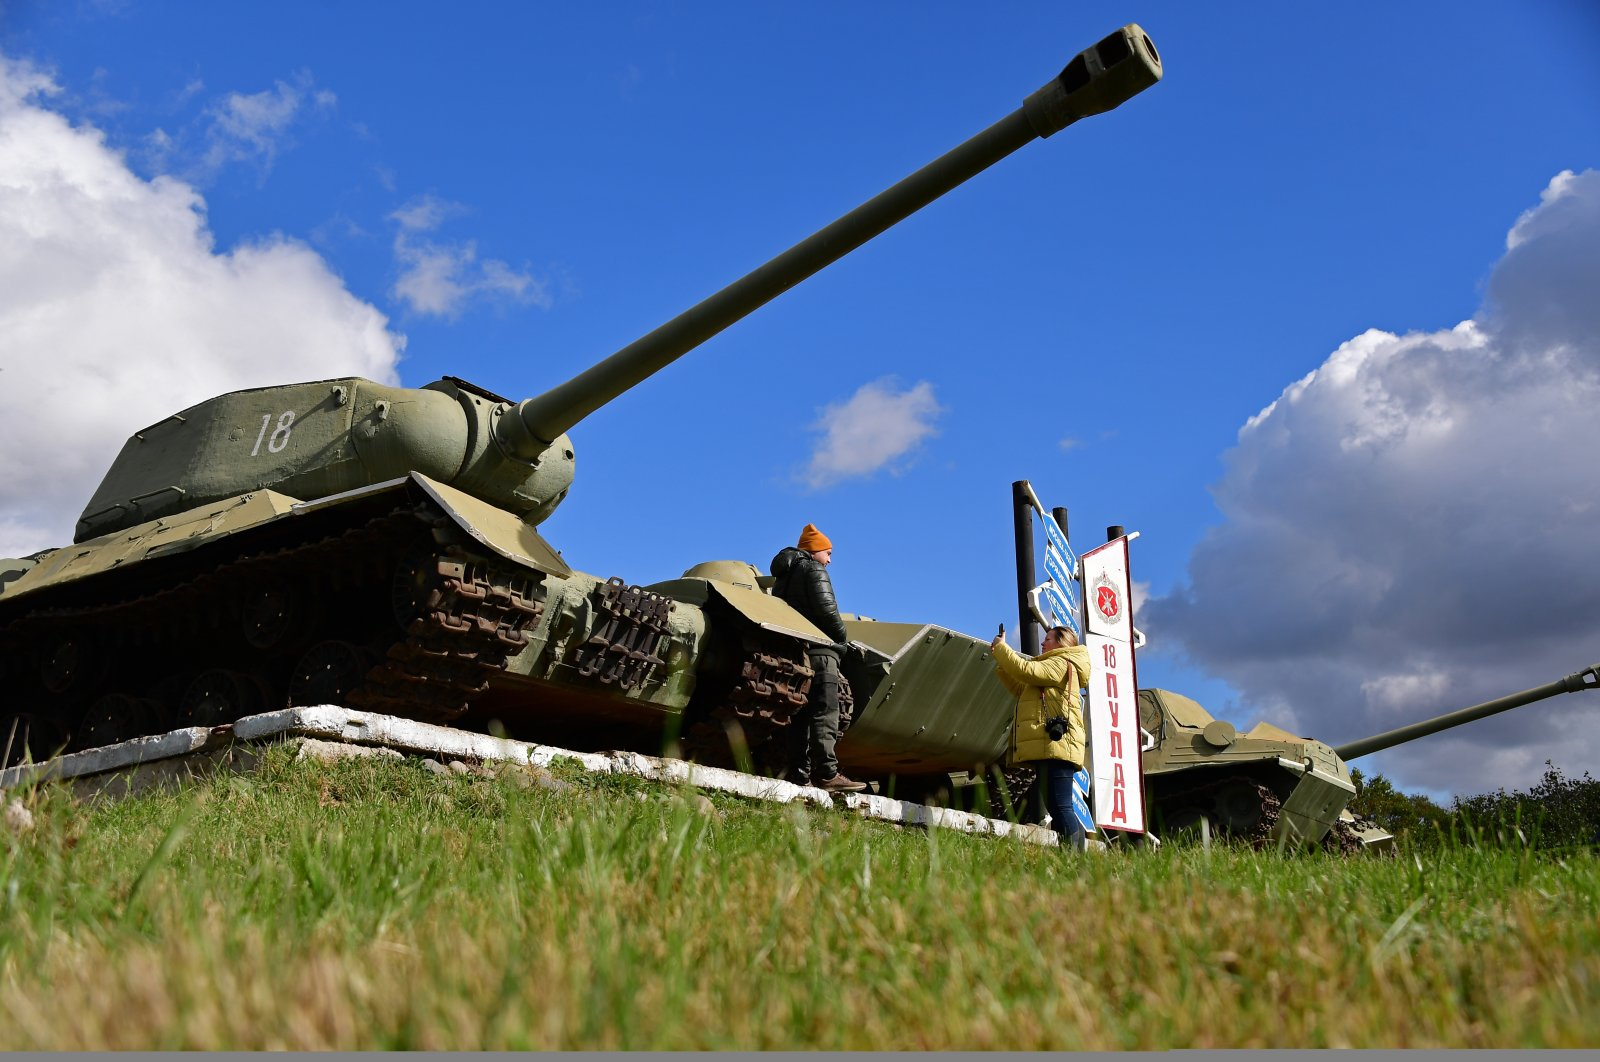 Soviet tanks-monuments of the 18th Machine Gun Artillery Division on Iturup Island, the largest one of the Kuril Islands, situated in the southern part of its Greater Kuril Chain, Sakhalin region, Russia, Oct. 16, 2020. (Photo by TASS via Reuters )